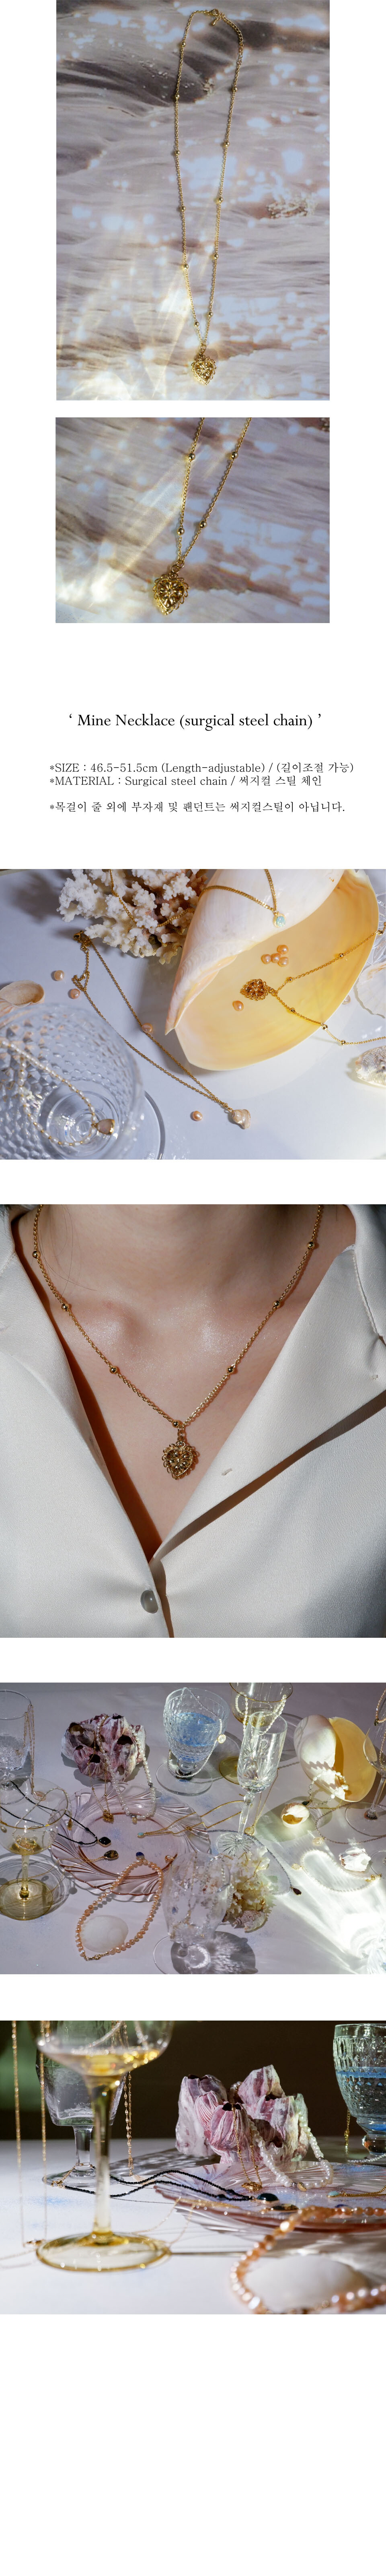 Mine Necklace (Surgical chain)